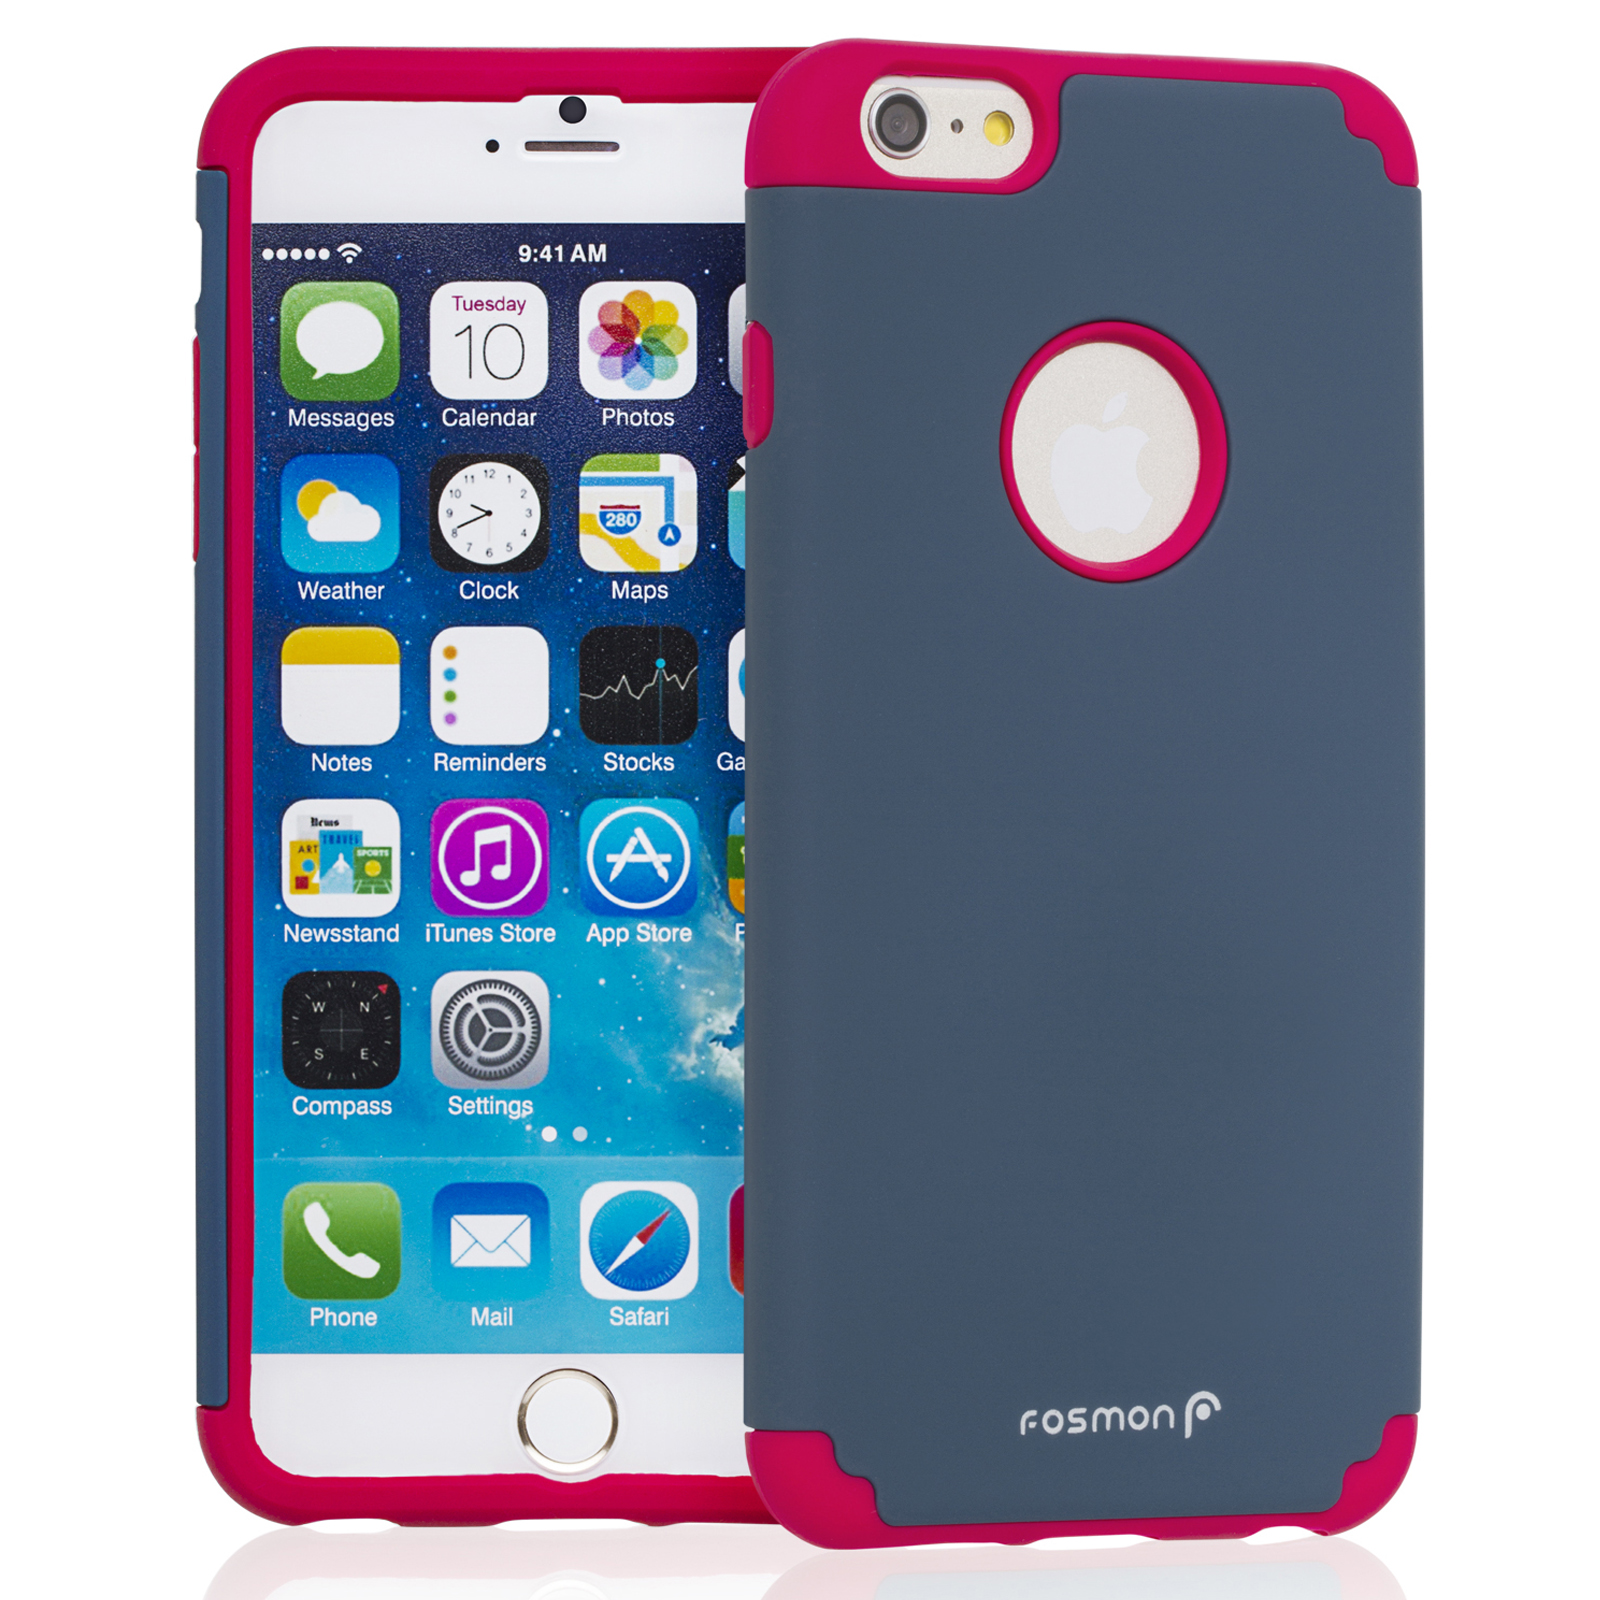 "Fosmon HYBO-DUOC Slim Fit Dual-Layer Hybrid Case for Apple iPhone 6 Plus (5.5"") - Red / Navy Blue"